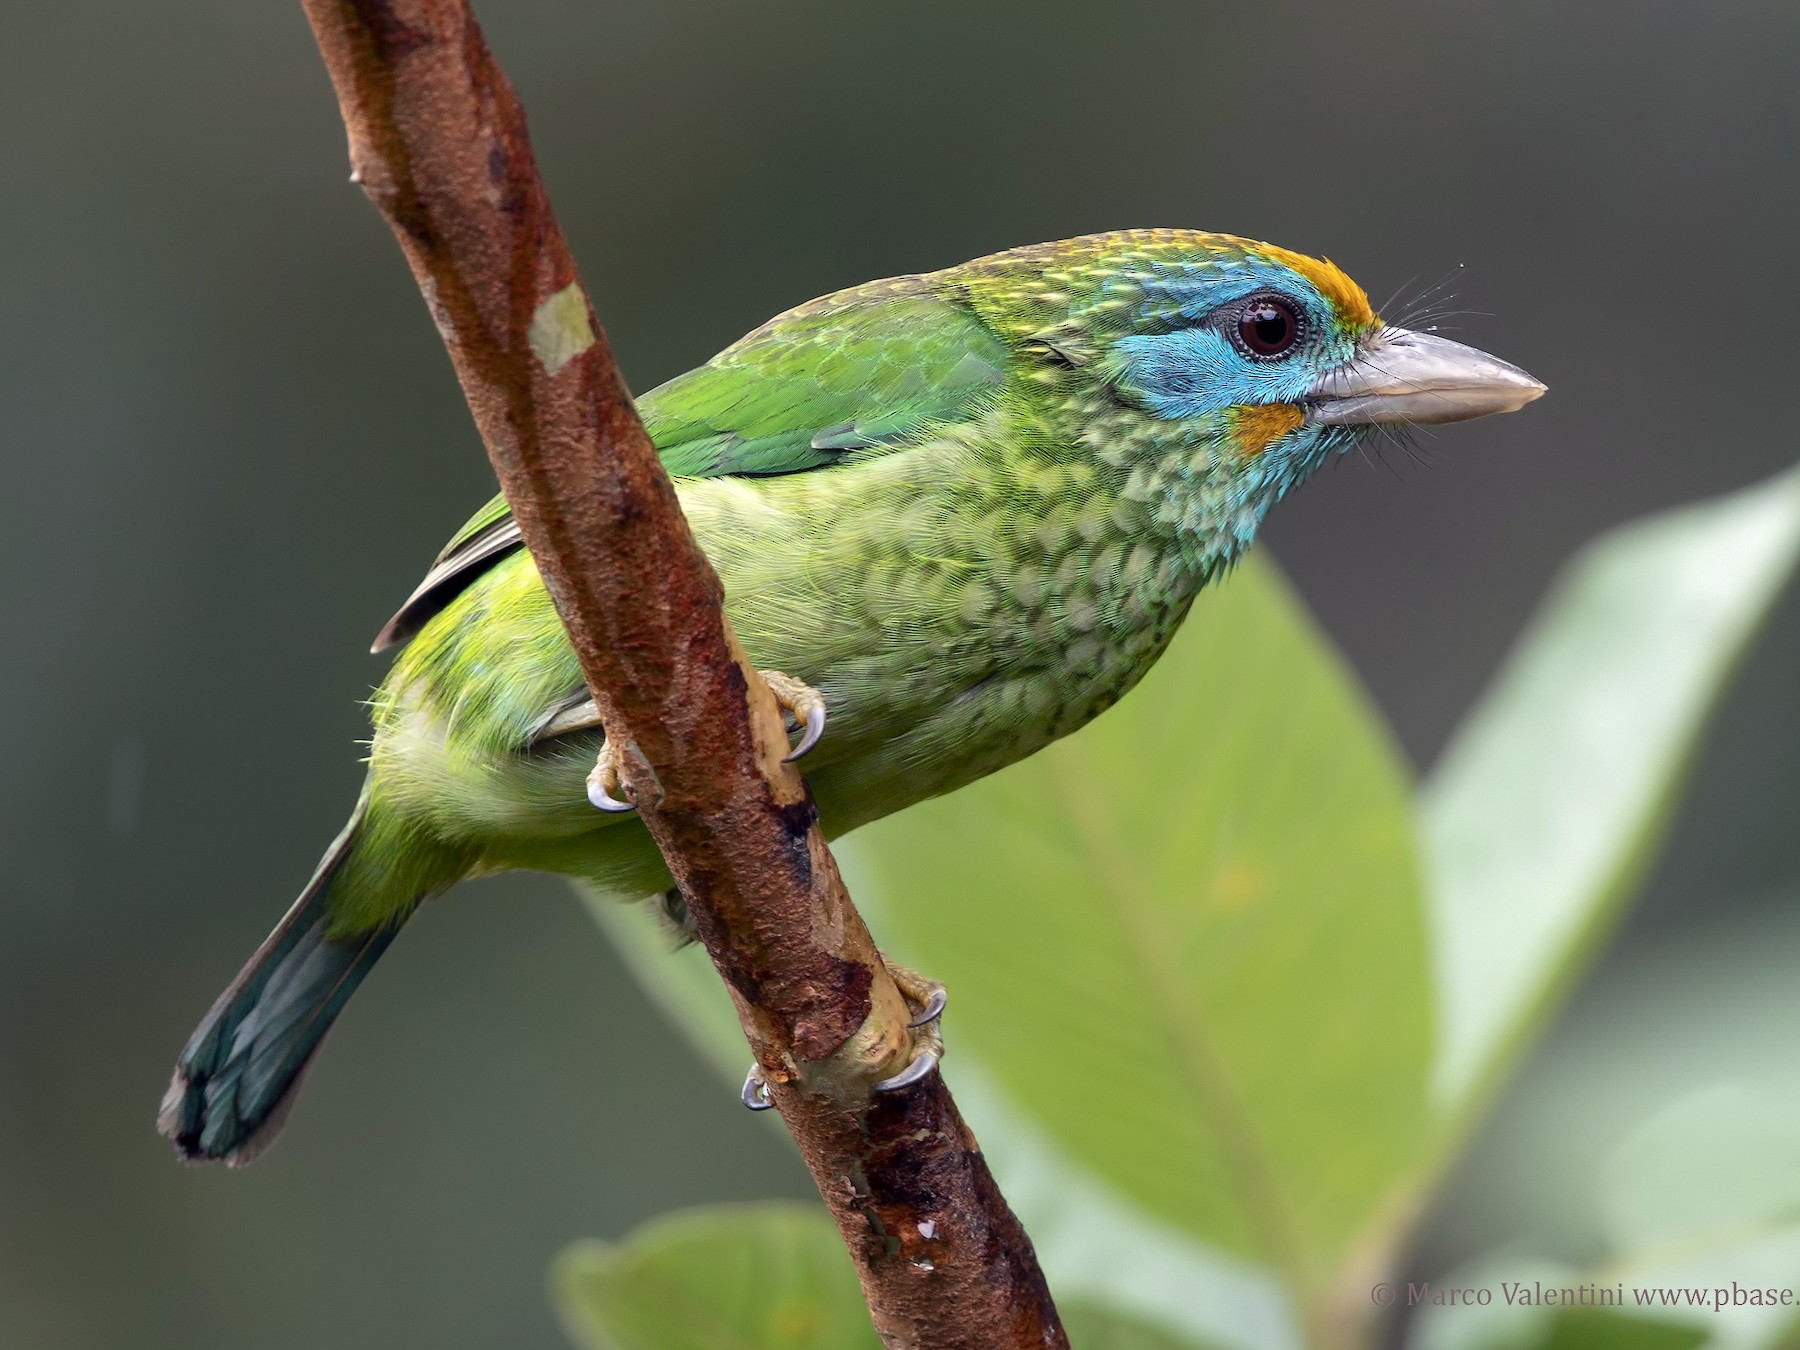 Yellow-fronted Barbet - Marco Valentini